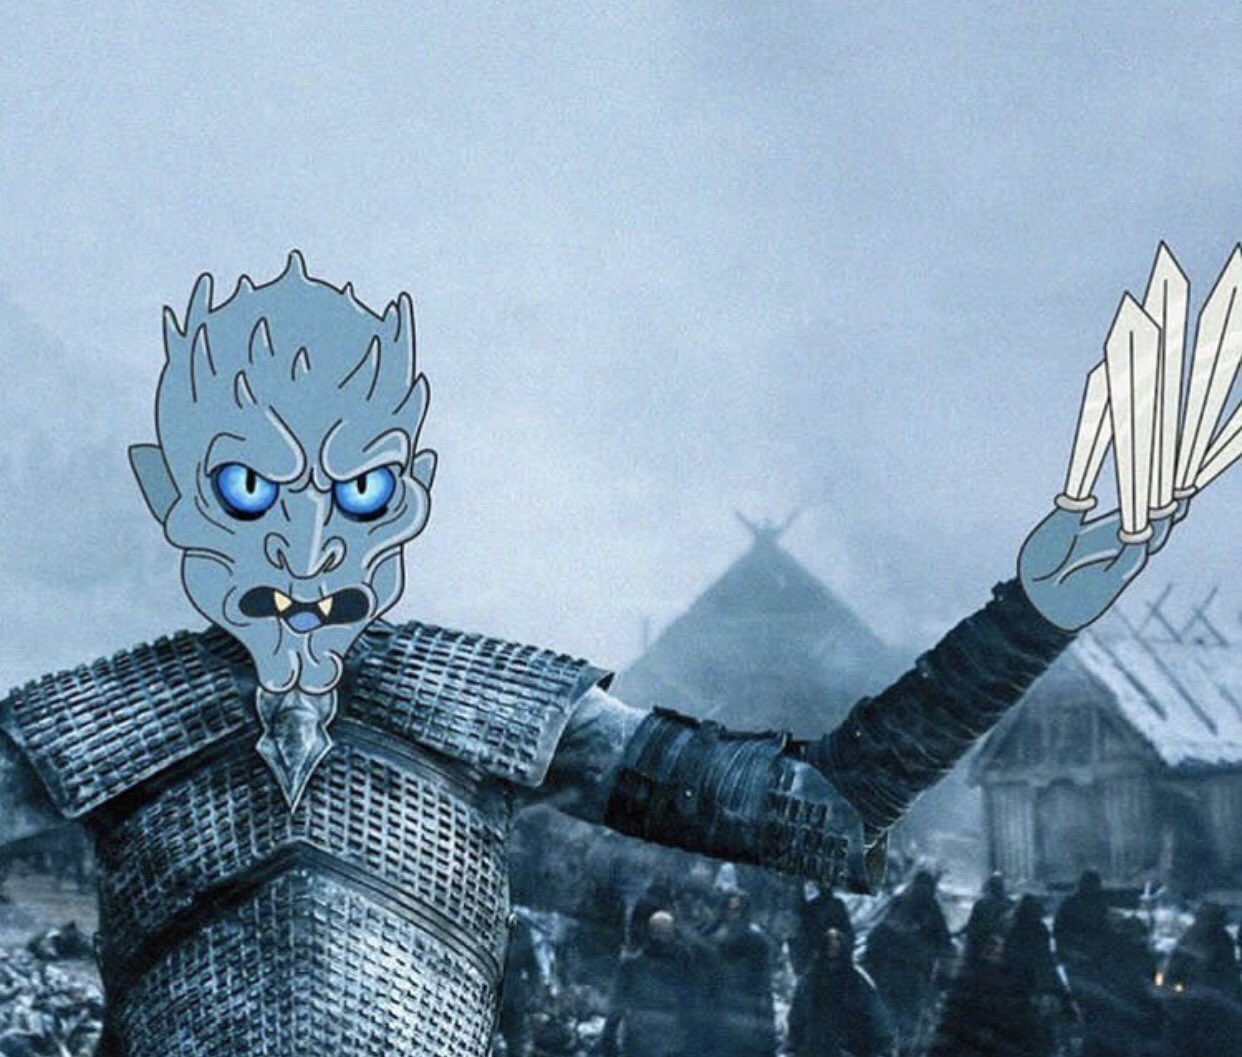 2 best shows are on tonight with new episodes - @GameOfThrones and @RickandMorty https://t.co/oTwEMvVIzd